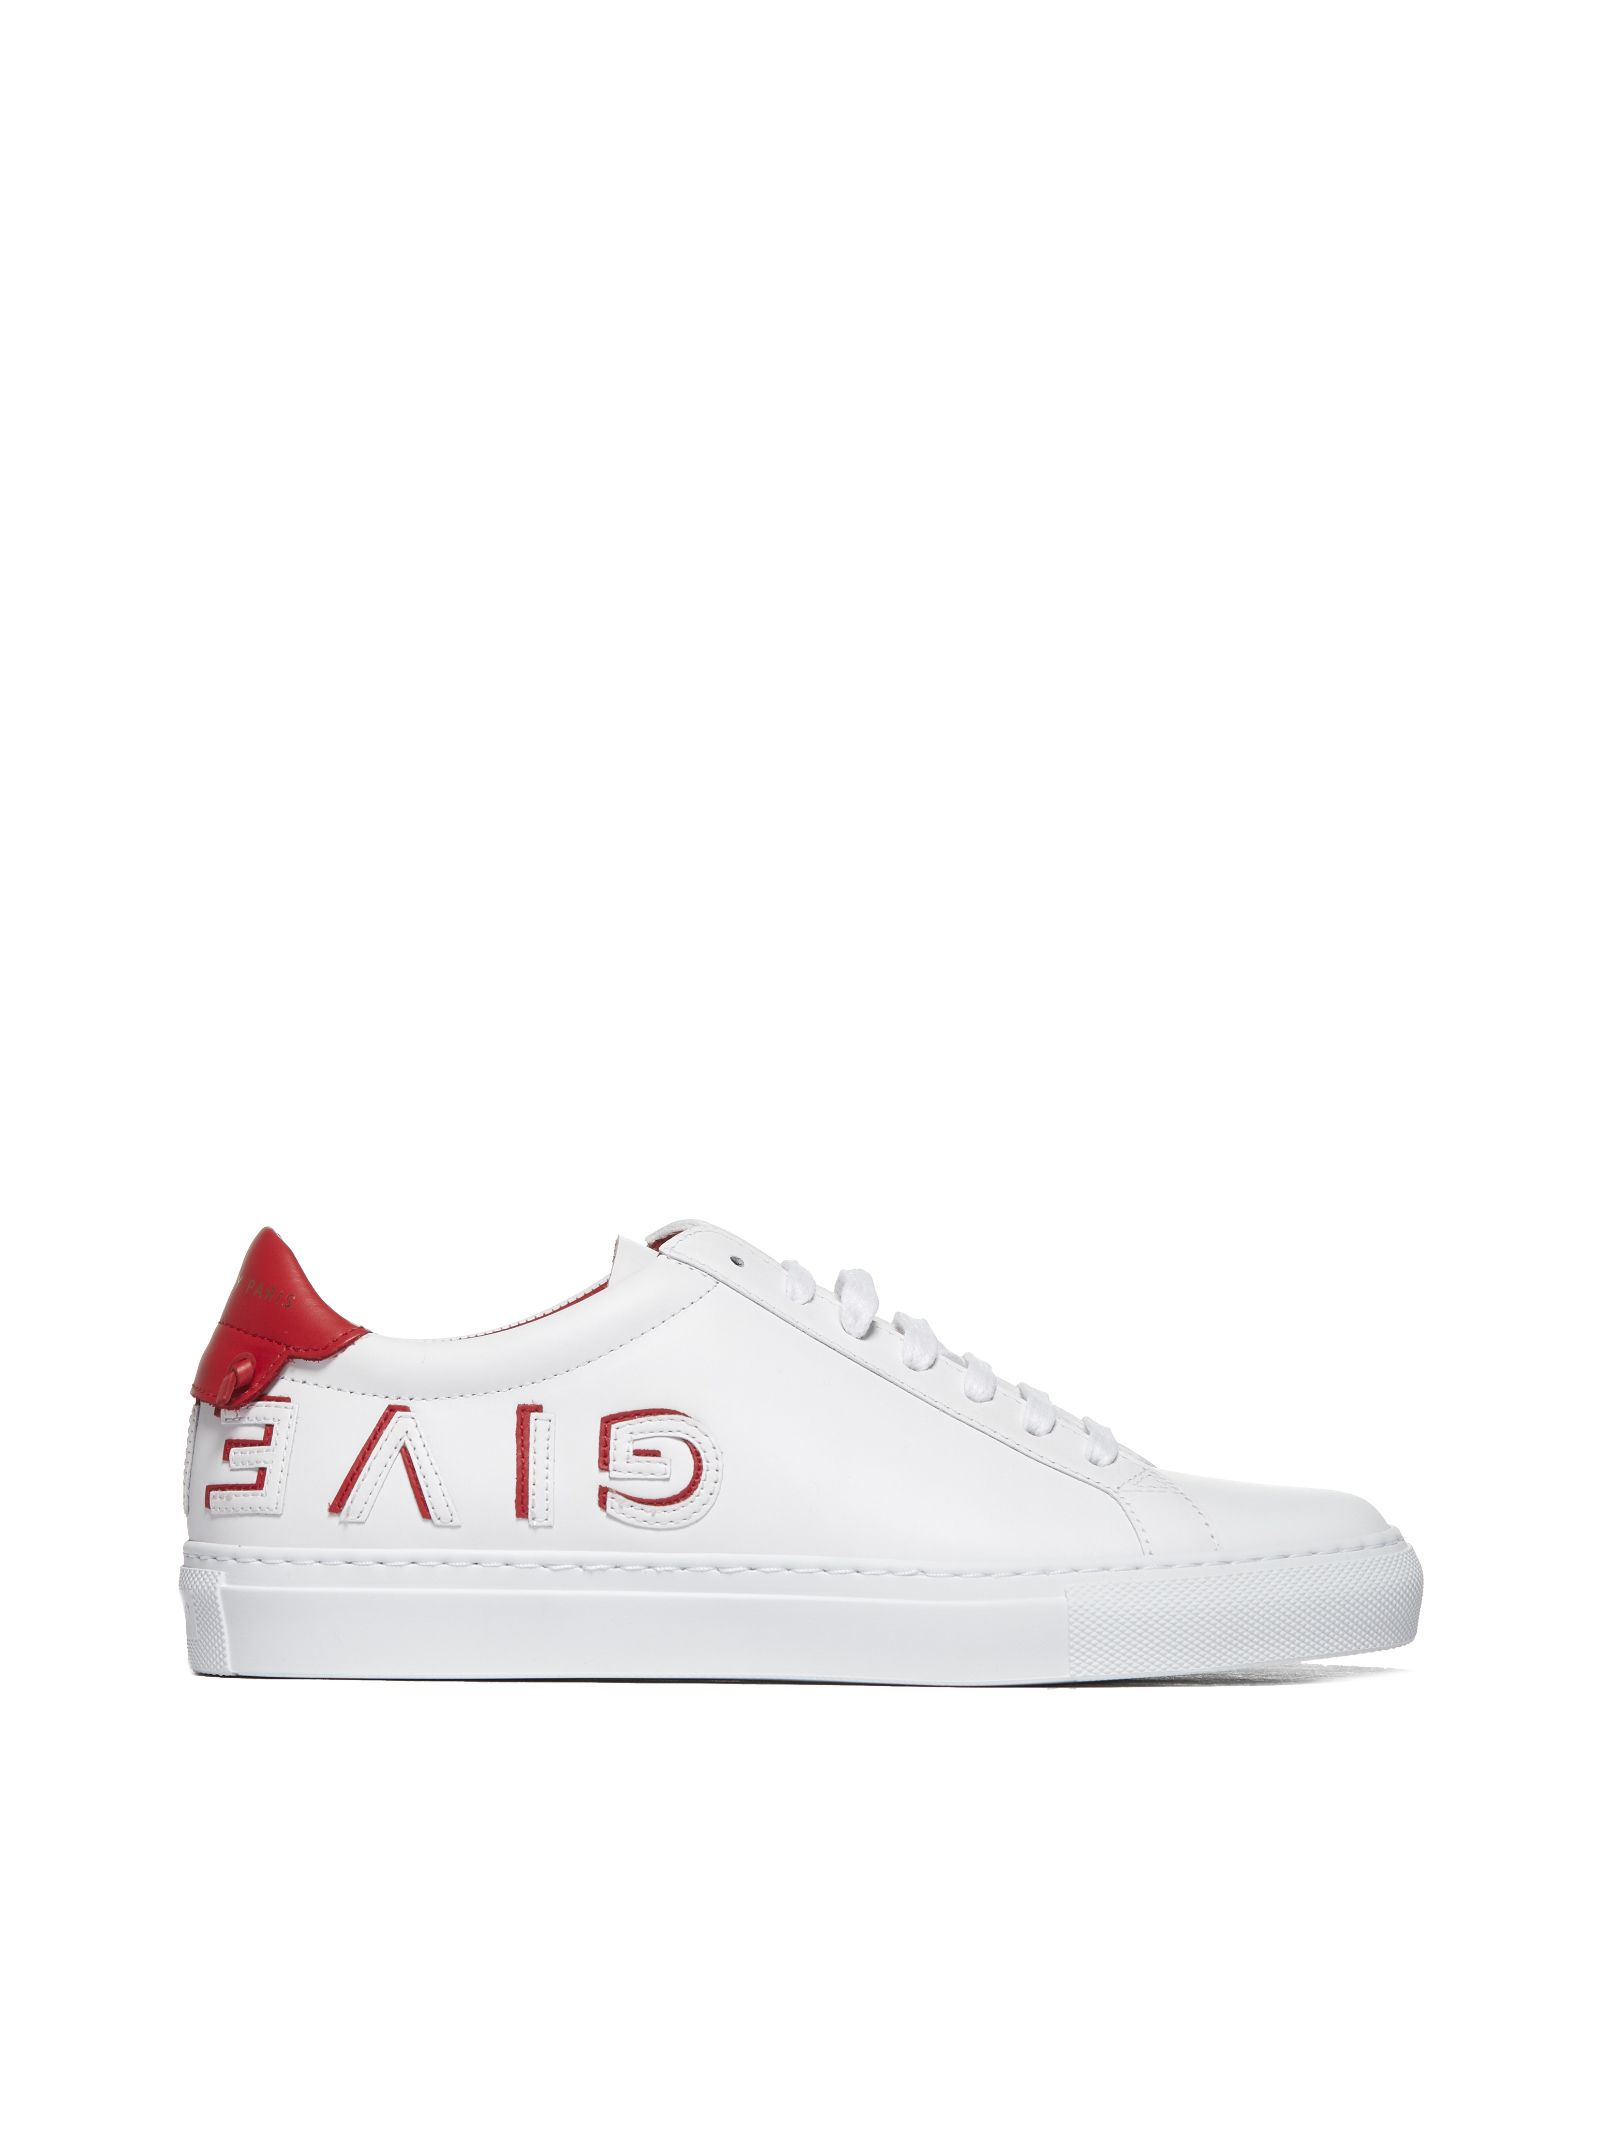 Givenchy Sneakers Givenchy Sneakers